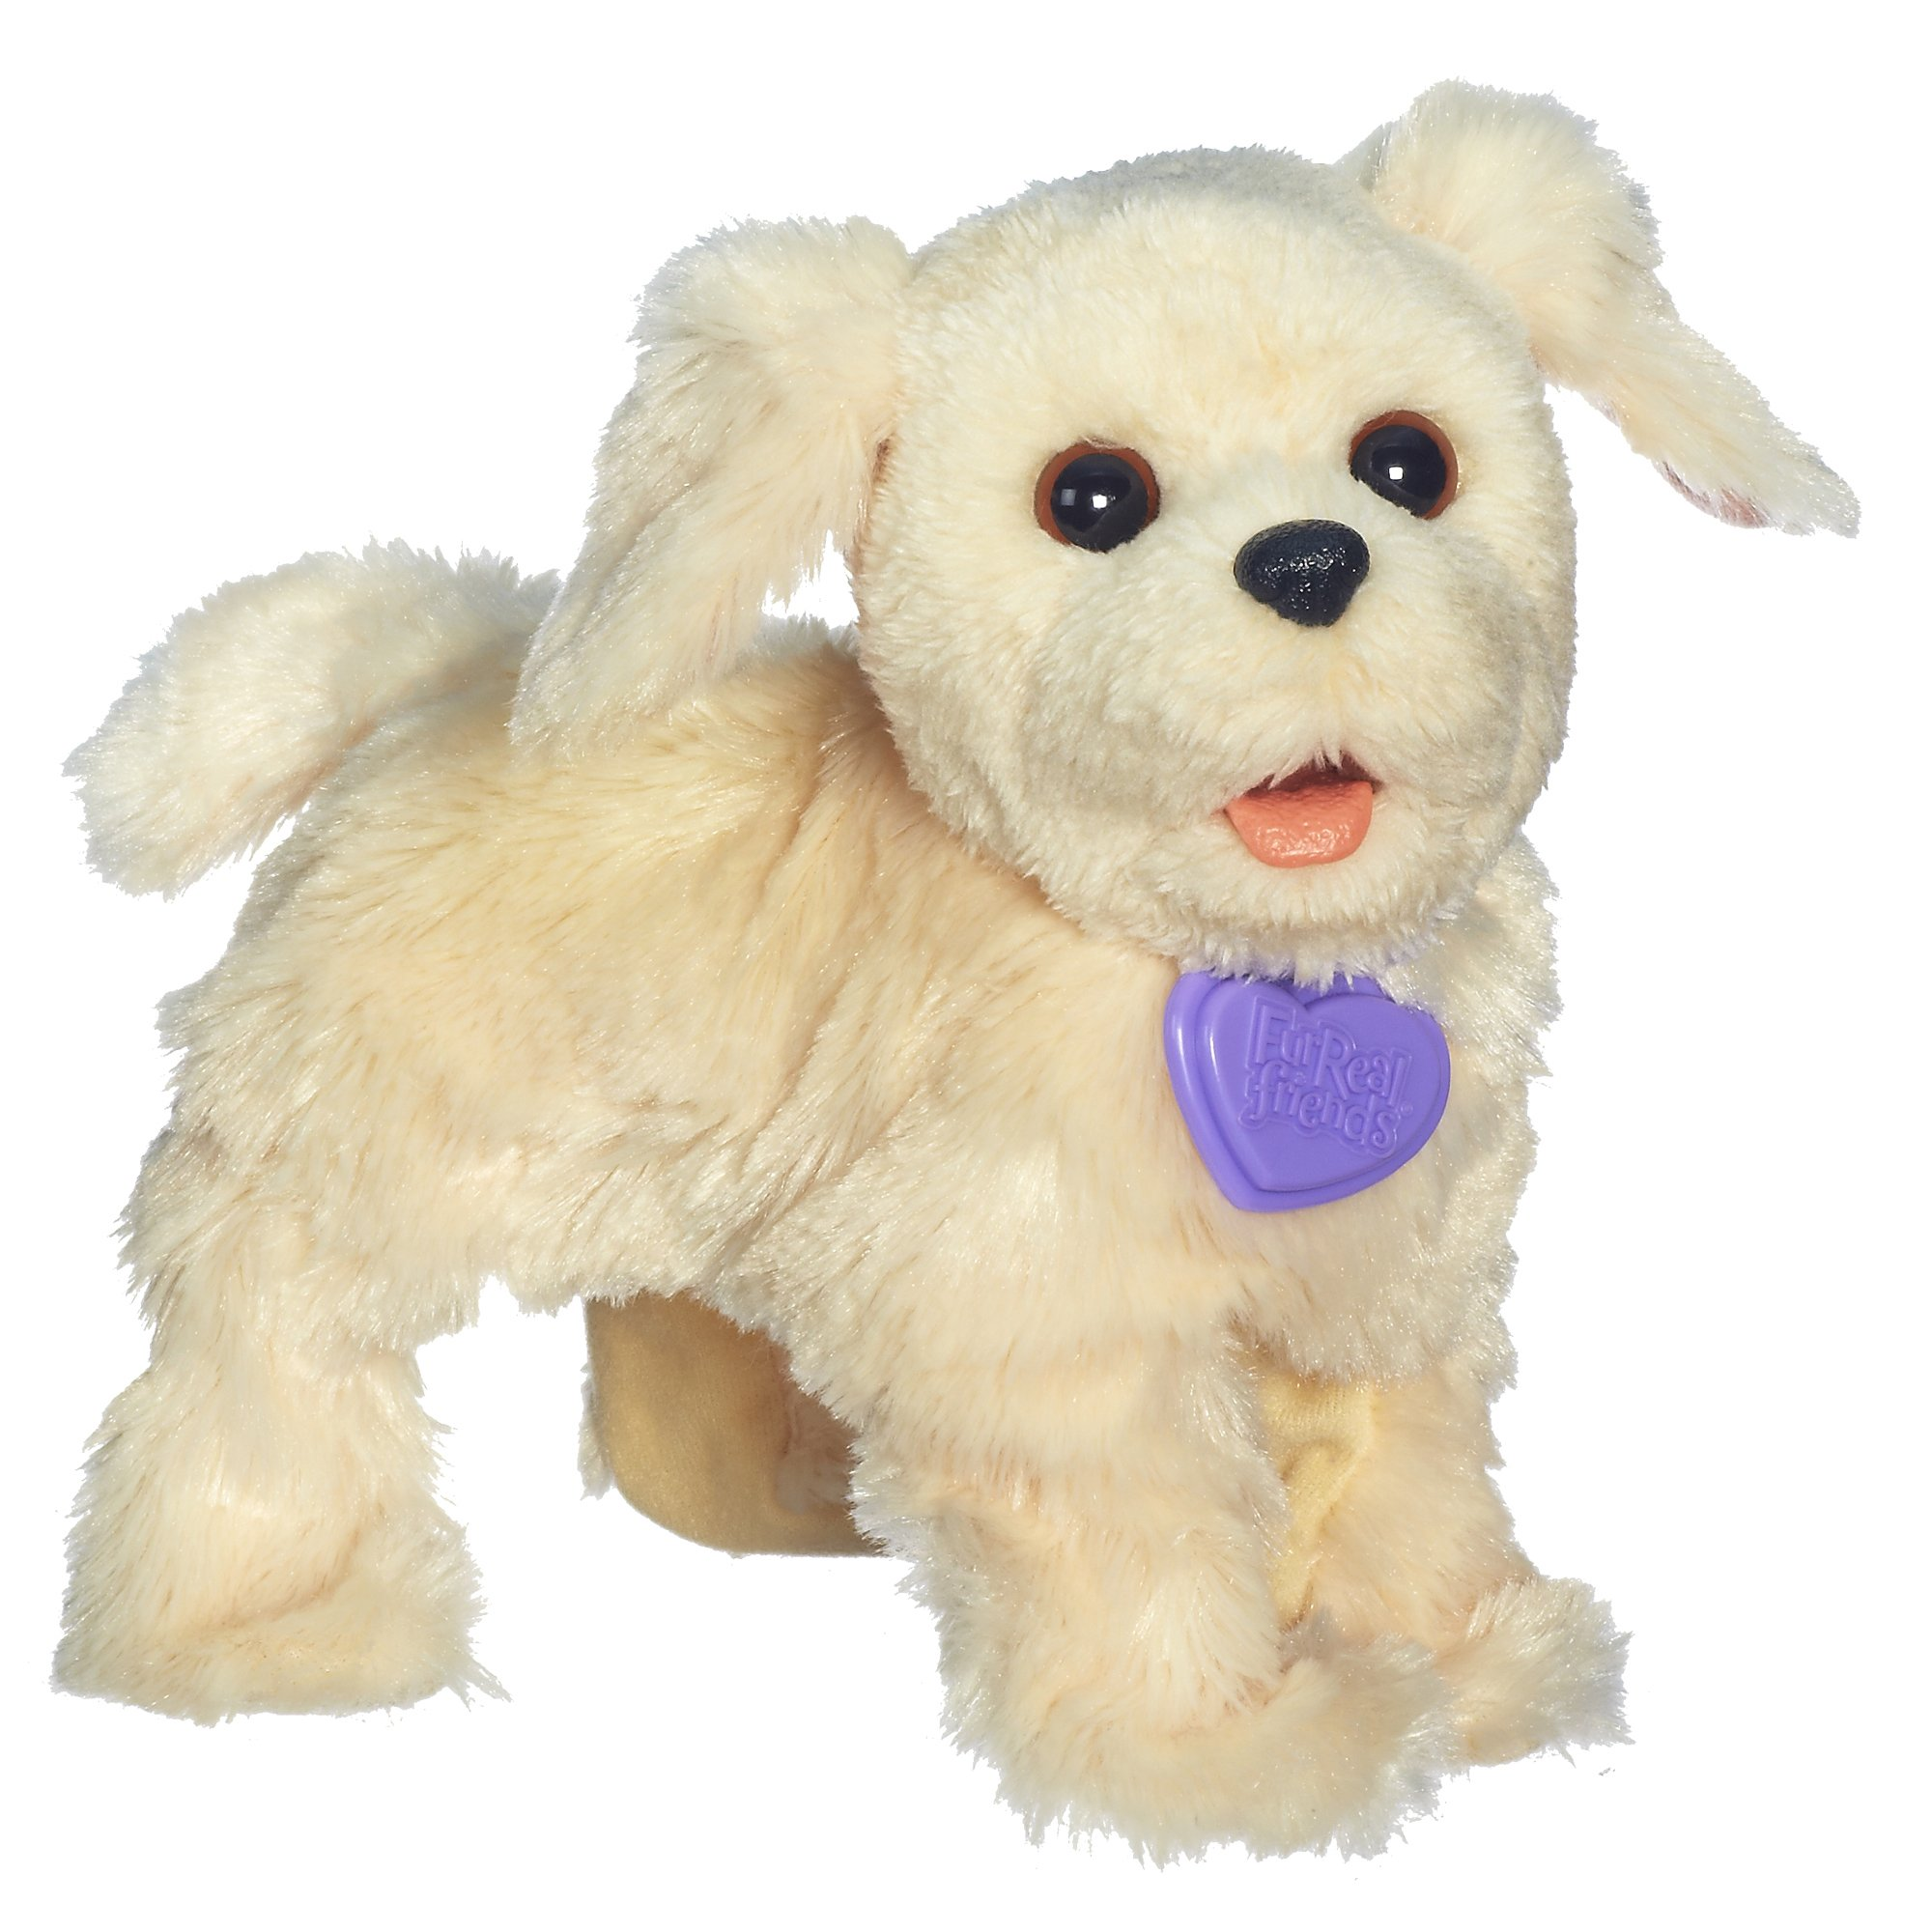 Top Furreal Friends Toys : Furreal friends walkin puppies biscuit toy plush ebay